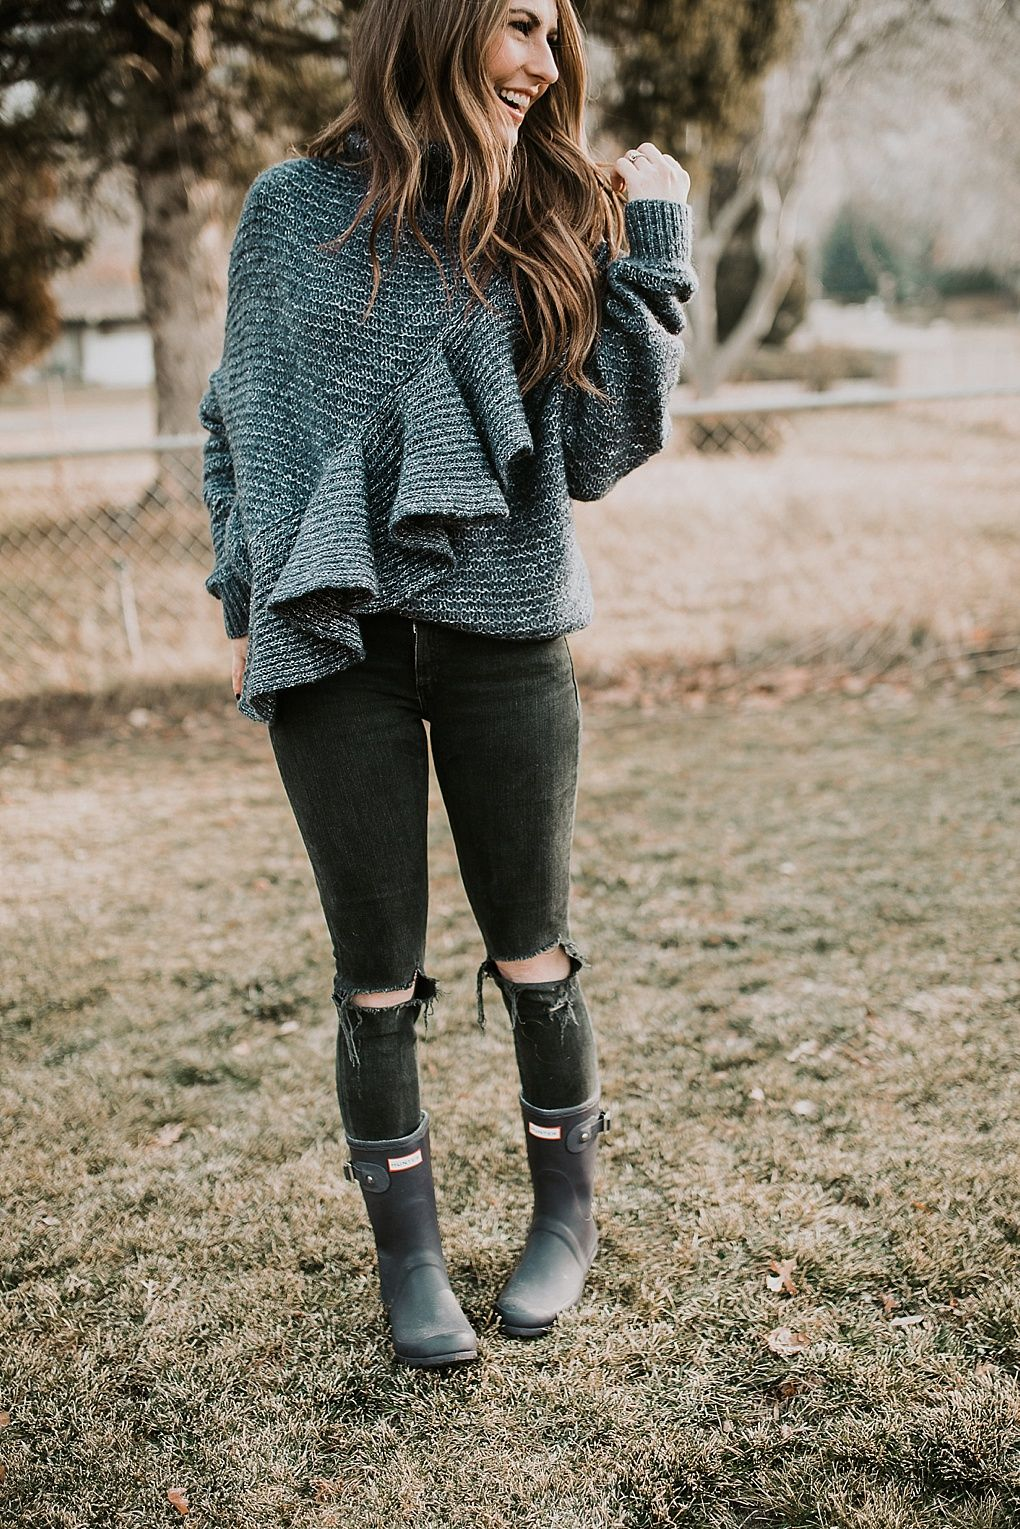 195953ebd7b The perfect cozy ruffle sweater paired with distressed black denim and  short Hunter boots! This is perfect winter cozy!